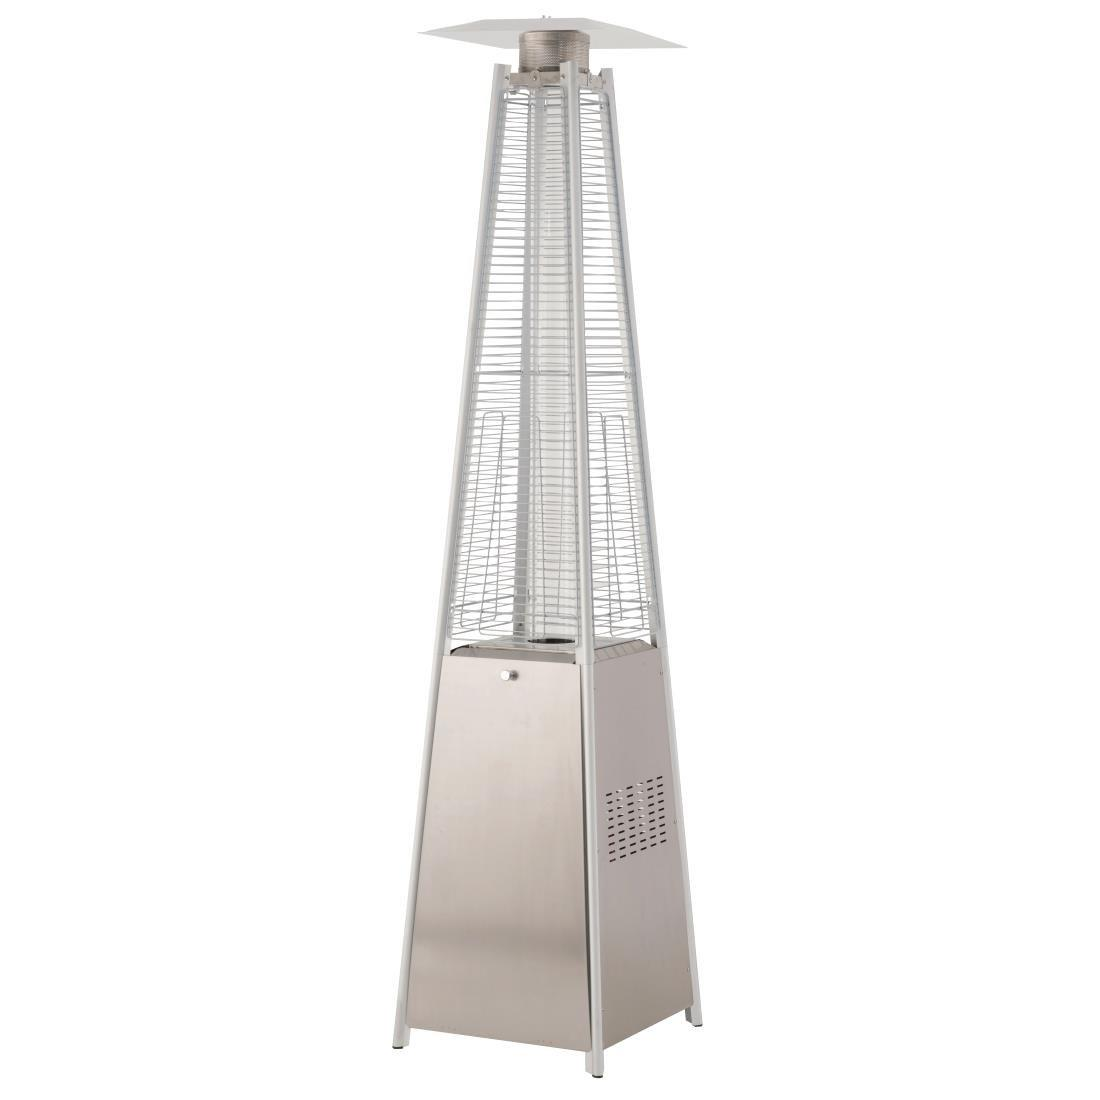 CL467 - Lifestyle Tahiti Flame Stainless Steel Patio Heater 13kW - Each - CL467